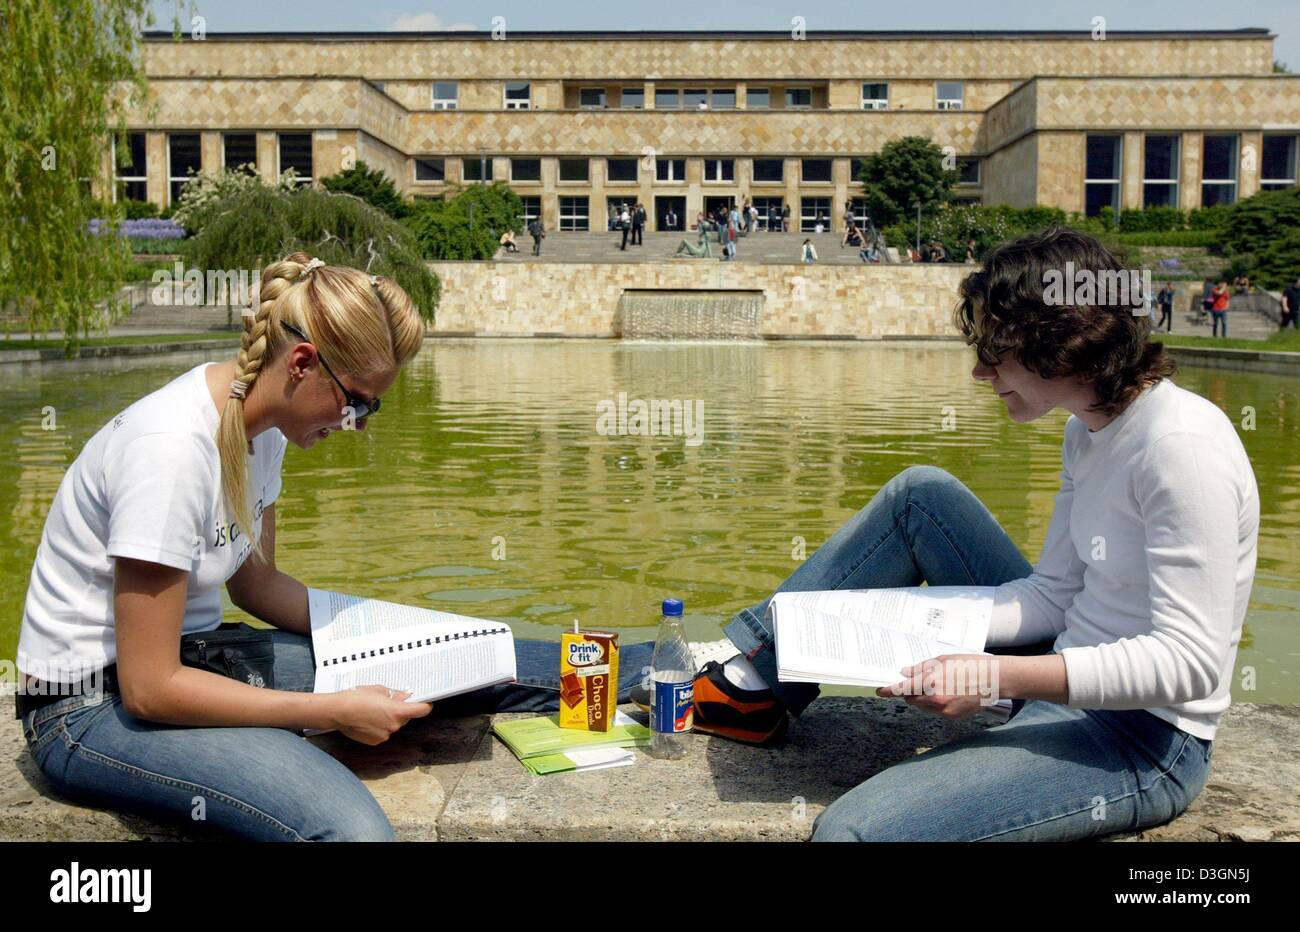 Students stduy during their lunch break in front of a pool on the campus of the Johann Wolfgang Goethe University Stock Photo